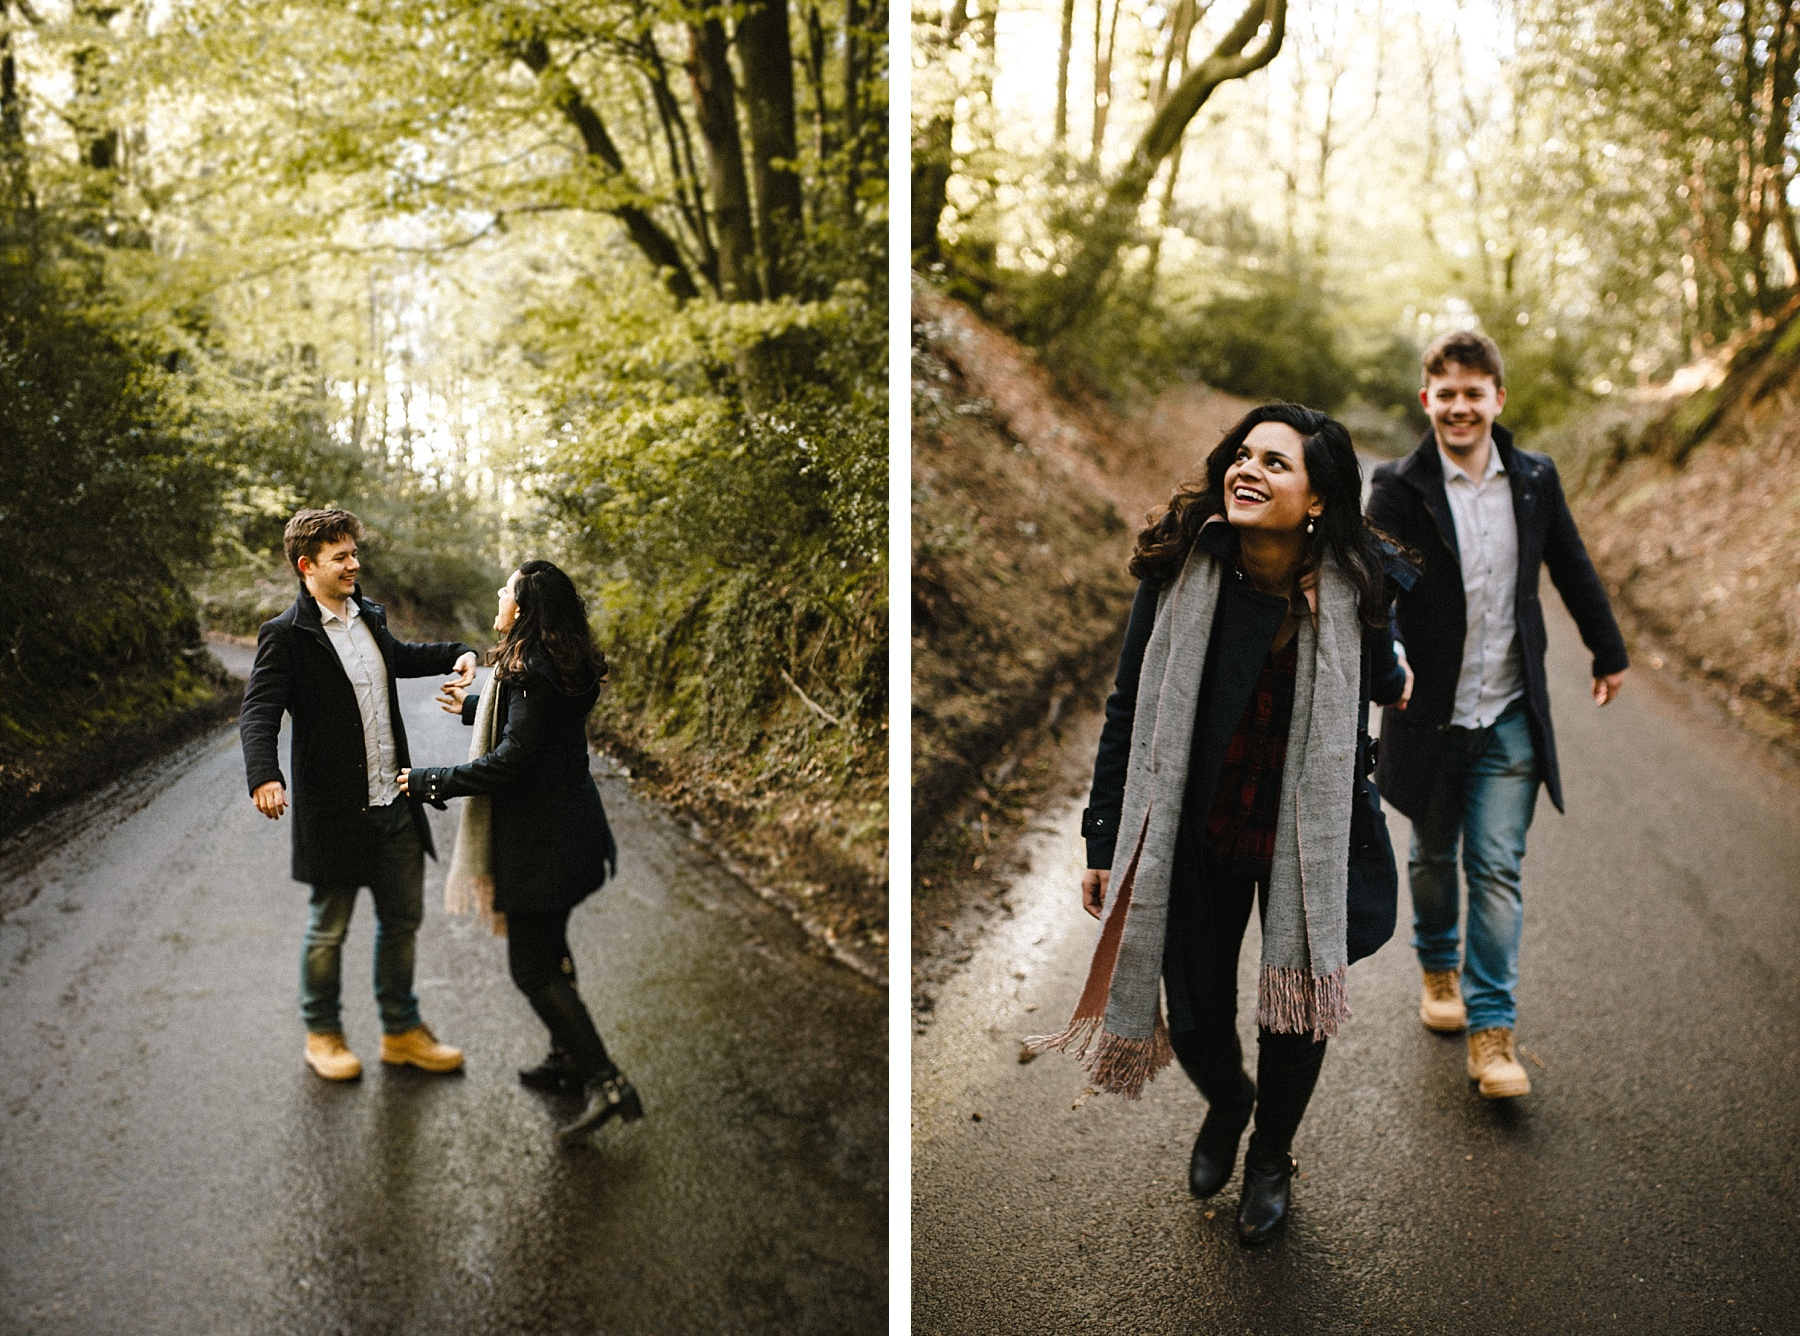 Colour photo of Bride & groom walking up road